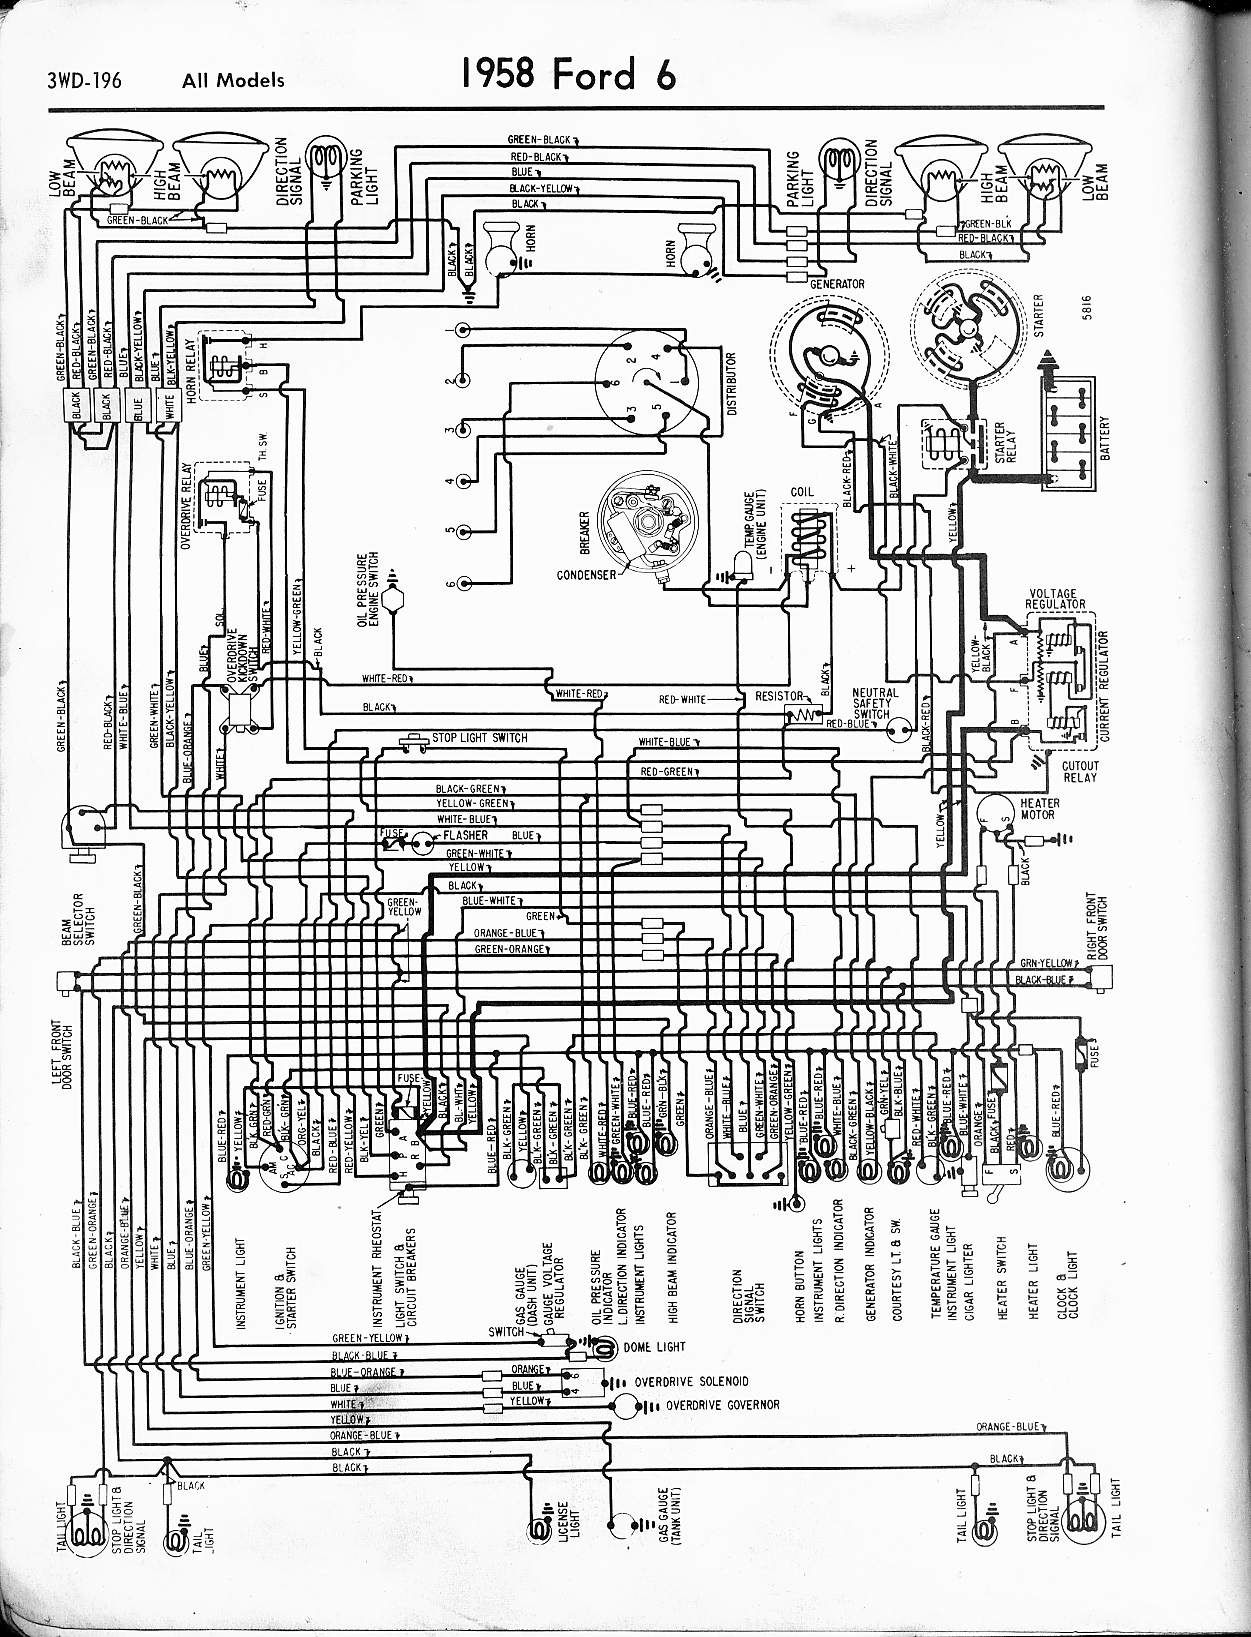 1958 Ford 6 Wiring Schematic